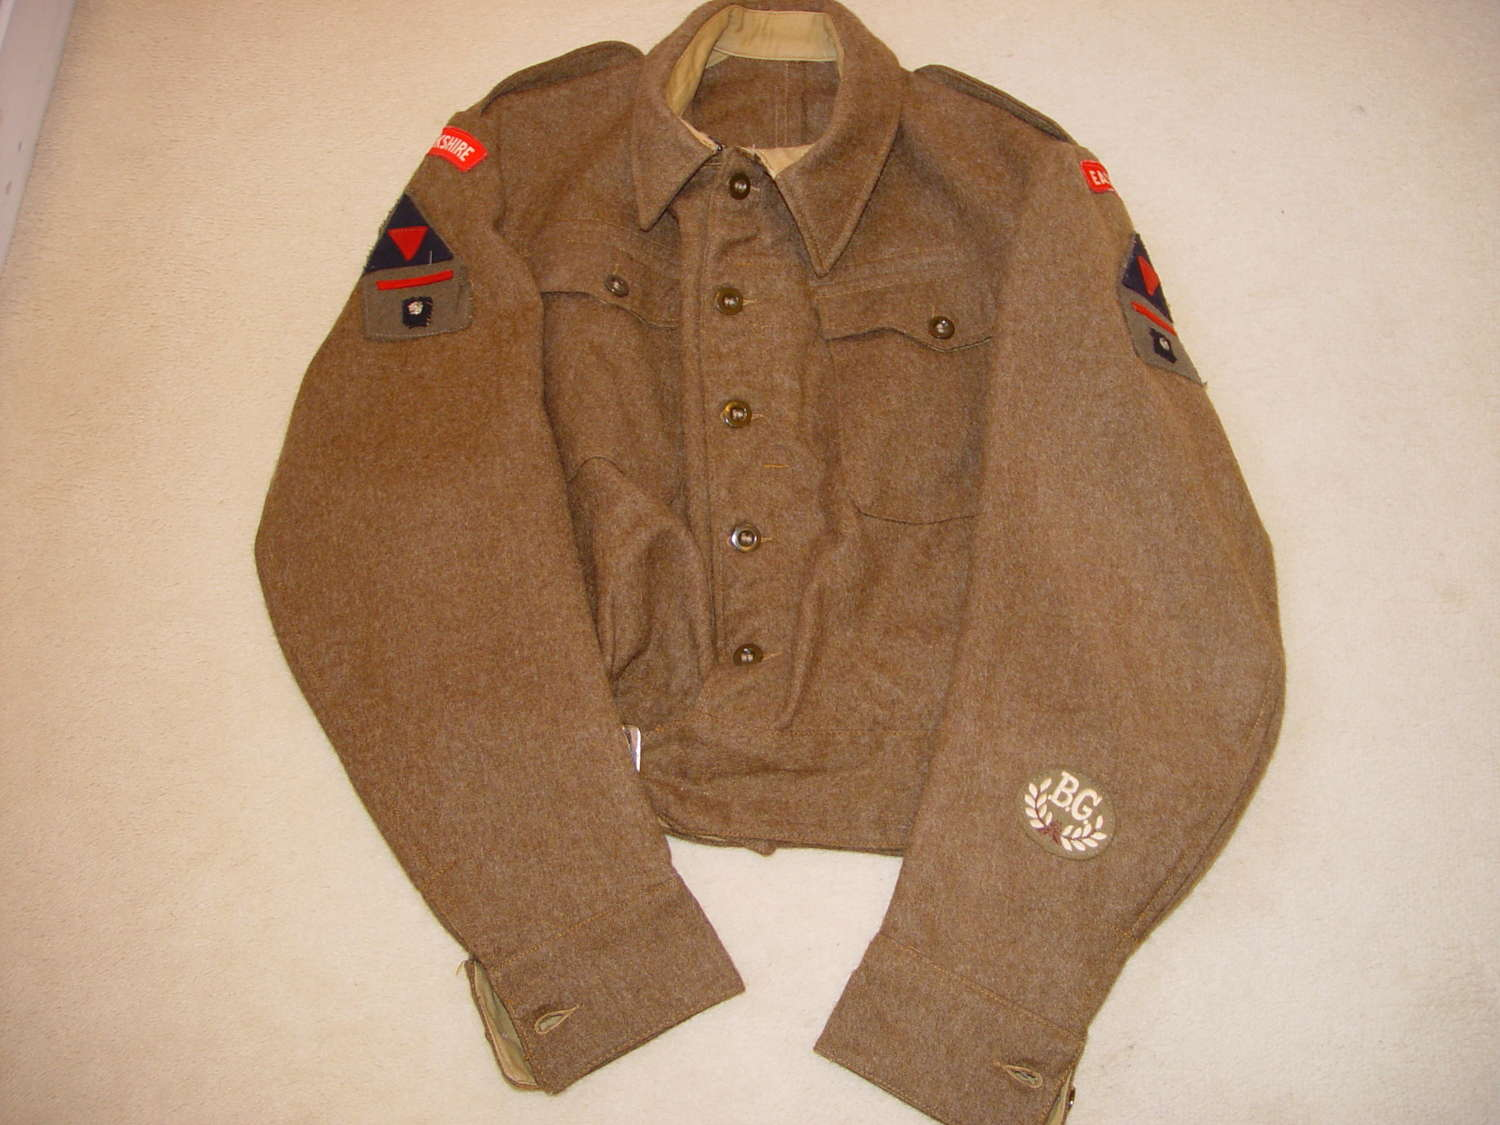 British army 3rd Infantry division Battle Dress blouse